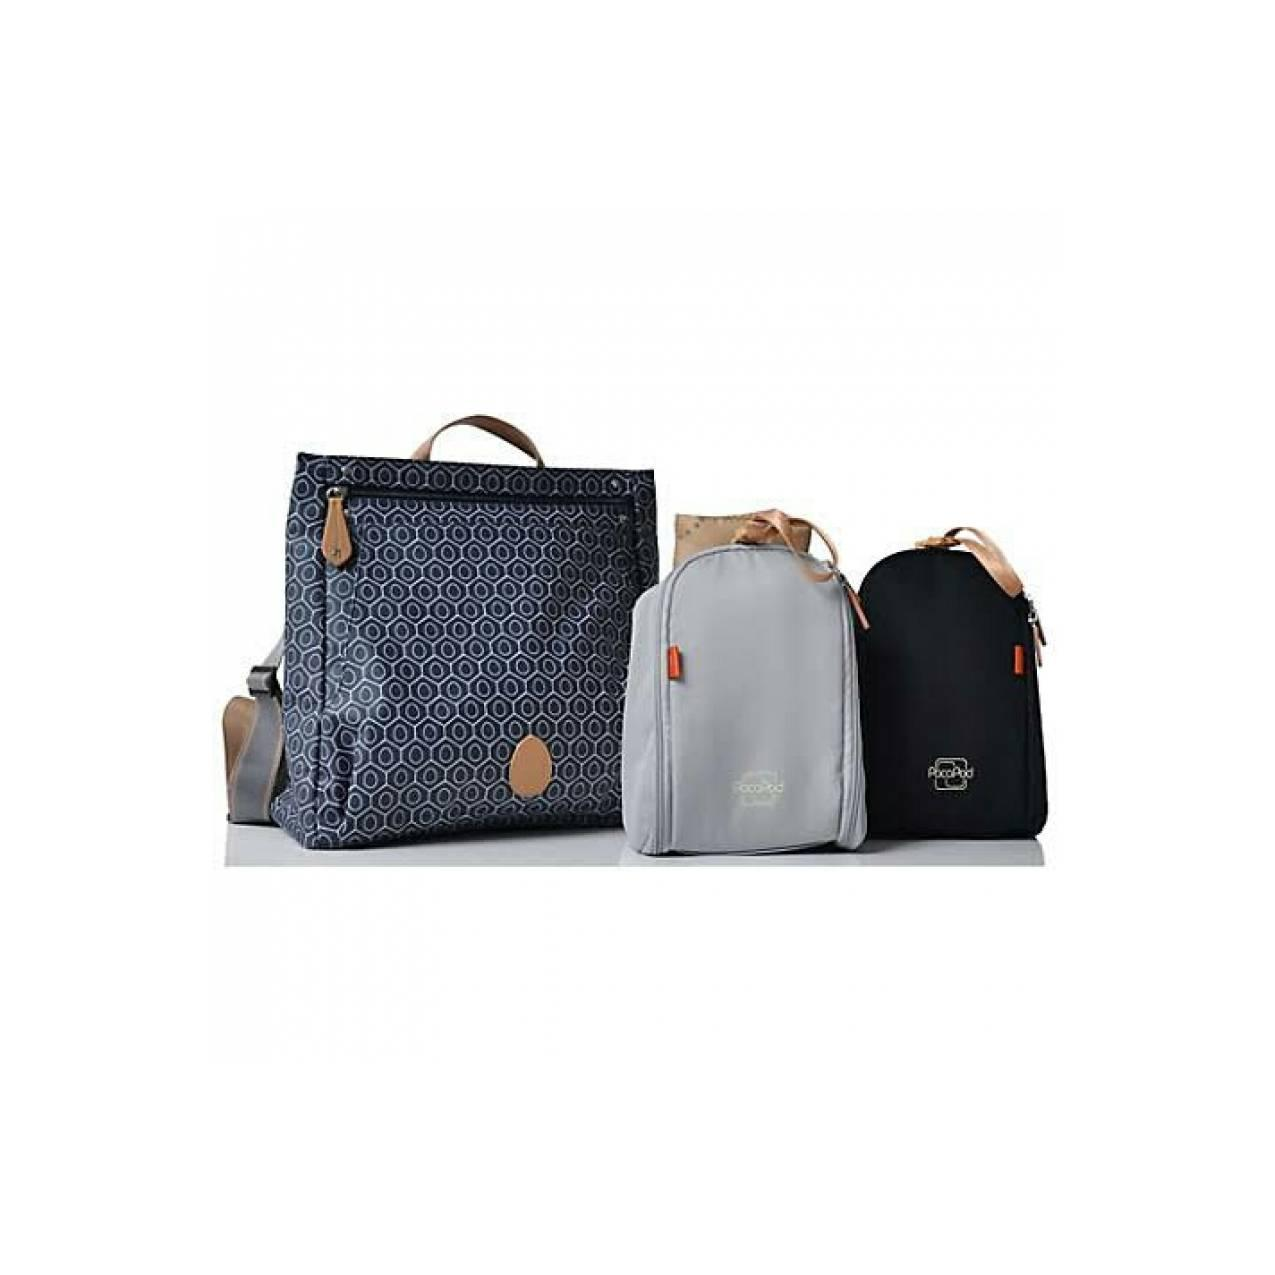 Pacapod diaper bag - Lewis